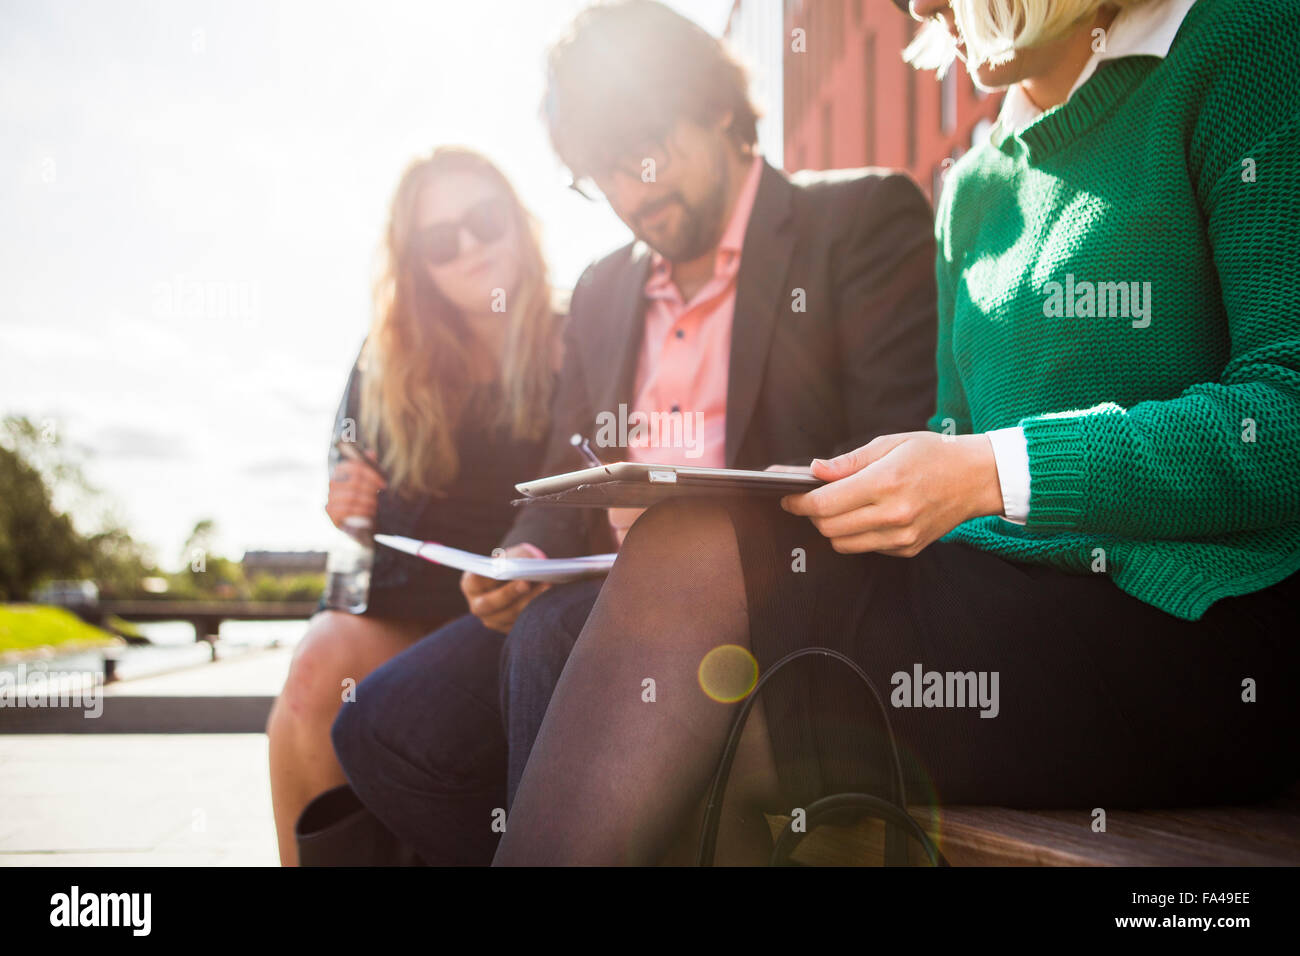 Business people discussing over digital tablet at Malmo Live - Stock Image